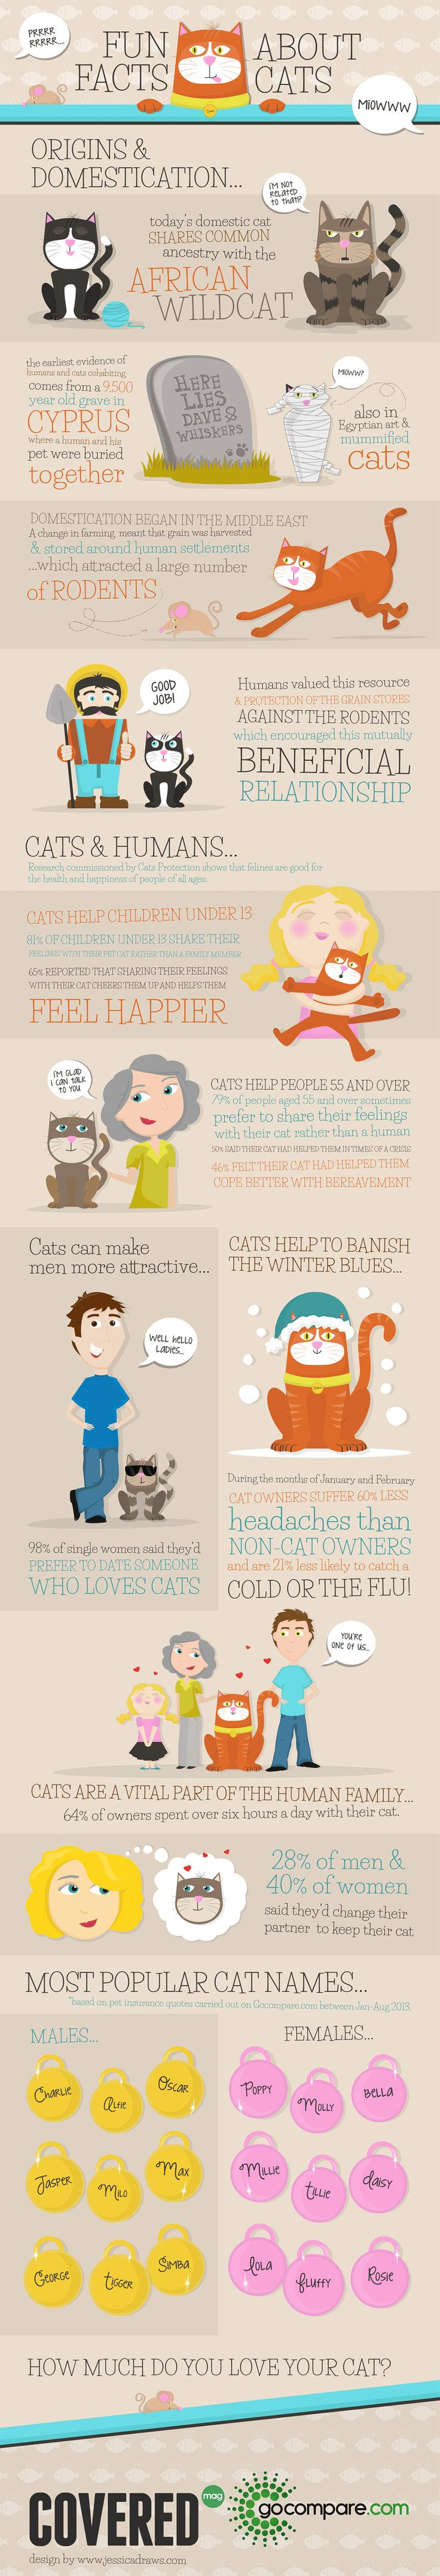 Facts About Cats (Infographic) #cat facts #infographics about cats